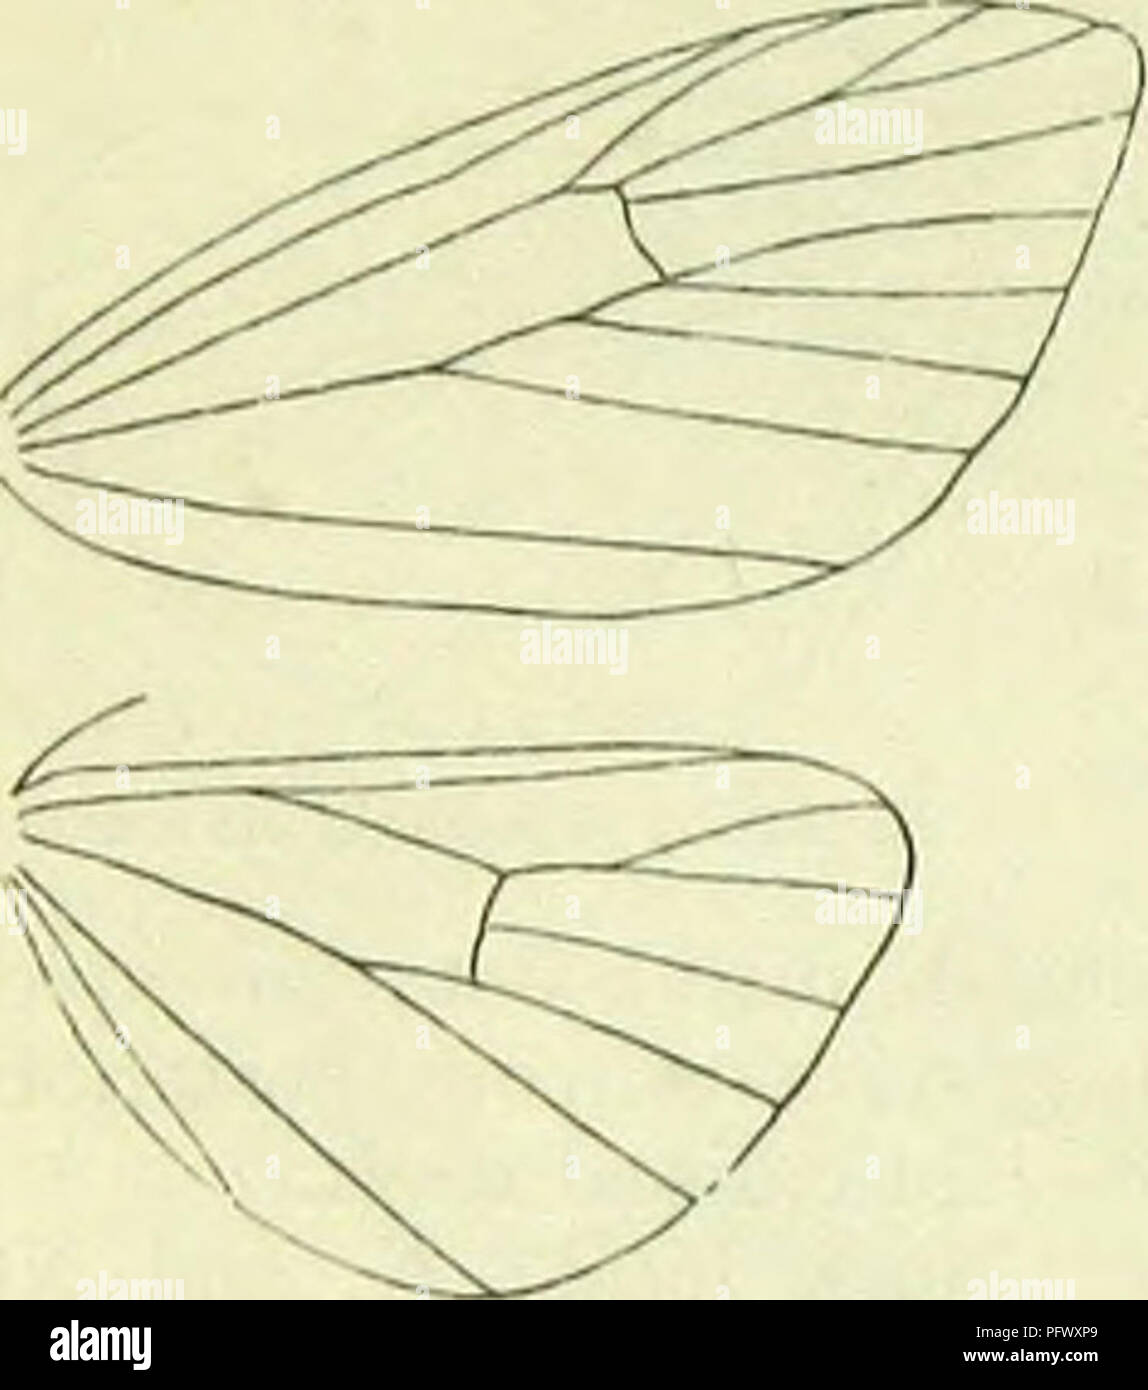 . A handbook of British lepidoptera. Lepidoptera. CARADRININA [nvtuiua. greyish subterminal line, connected with tcrmen in middle. Hindwings transparent, faintly ochreous-tinged, Britain to the Clyde, Kincardine, N. and W. Ireland, rather common; N. and C. Europe, Asia Minor; 7-8. Larva pale grey-brown, dorsal area bright pale yellow, hairs rather dark grey-brown; dorsal line dark fuscous; subdorsal blackish-brown ; a blackish dorsal spot on 8 ; head dark brown : on lichens ; 9-5. 8. Roeselia, Hb. Head with appressed scales, forming a short facial projection. Ocelli present. Antennae in J cili - Stock Image